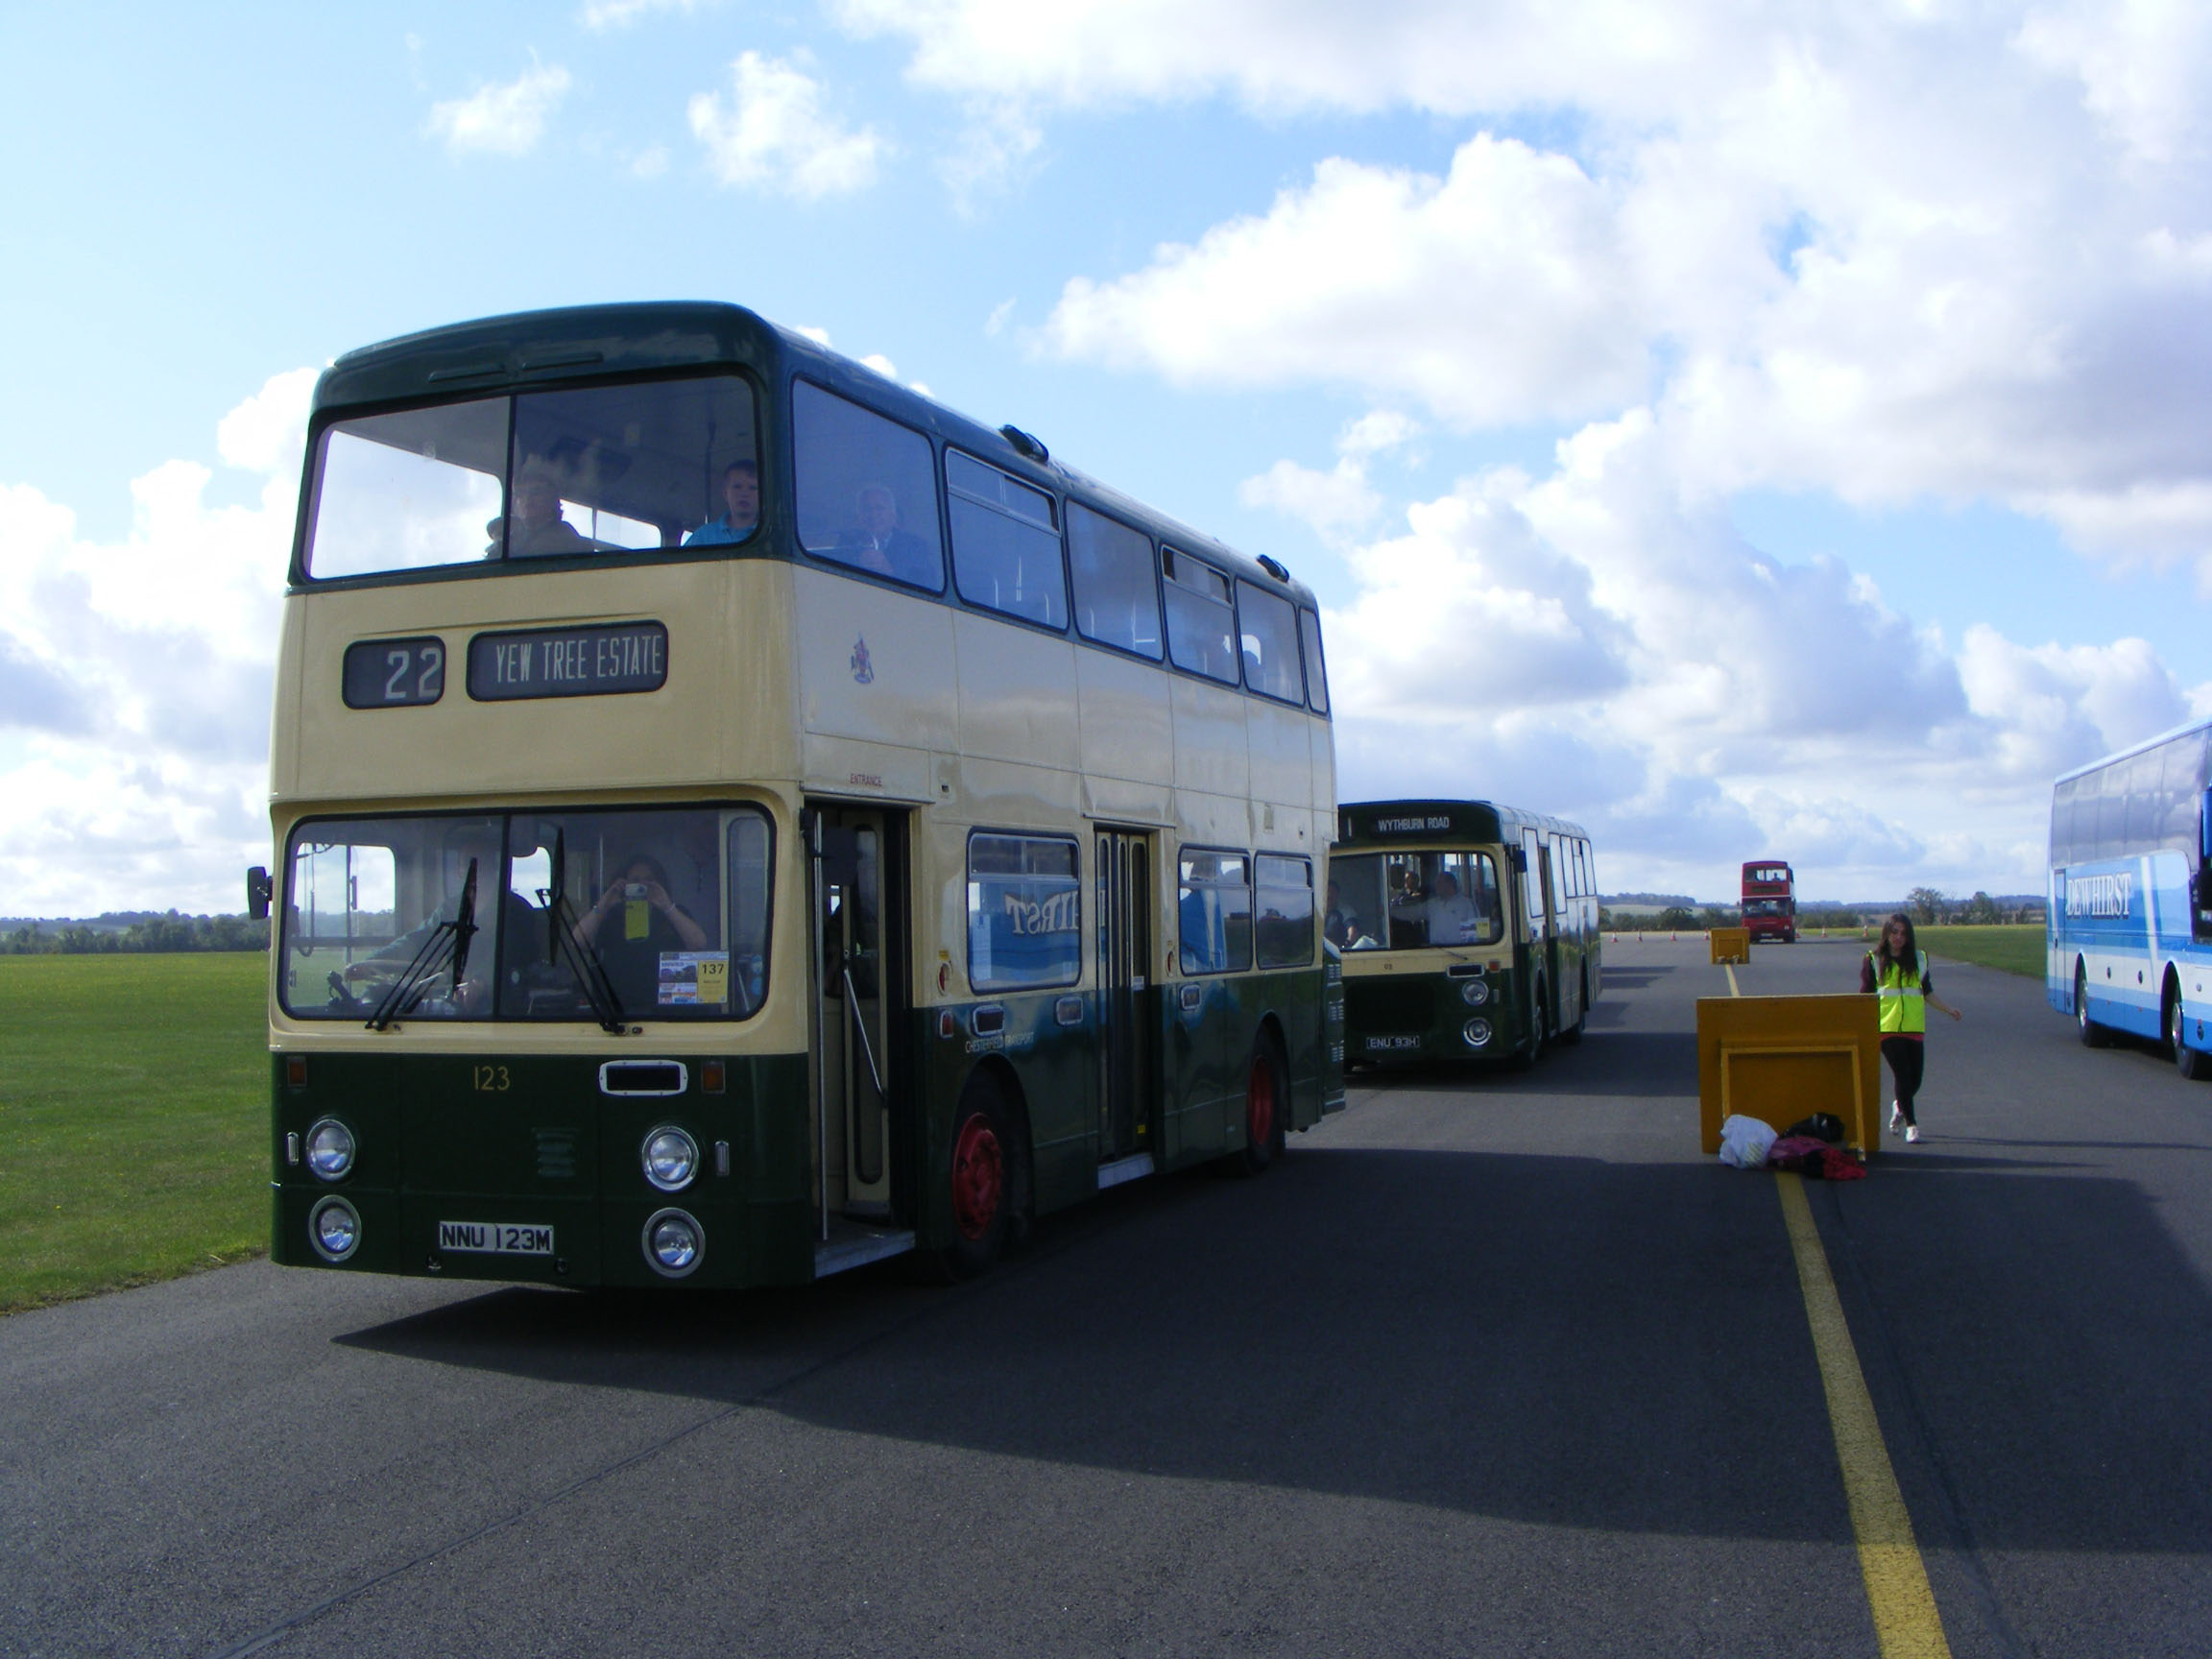 Chesterfield Corporation Daimler Fleetline Roe 123